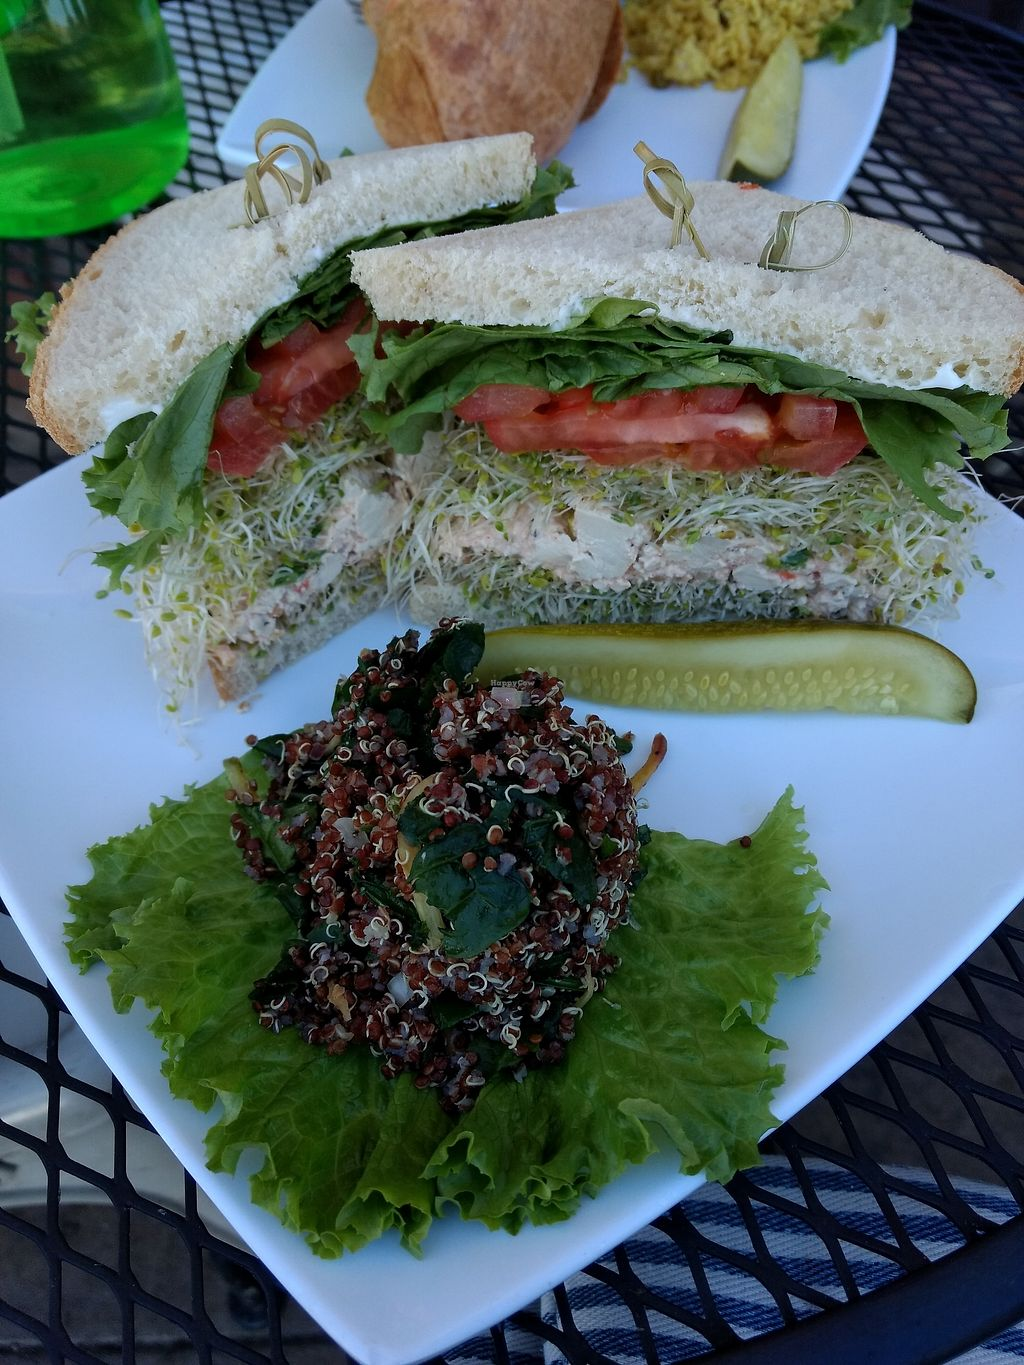 """Photo of Natural Sister Cafe  by <a href=""""/members/profile/anastronomy"""">anastronomy</a> <br/>Eggless tofu sandwich <br/> December 21, 2017  - <a href='/contact/abuse/image/18427/337783'>Report</a>"""